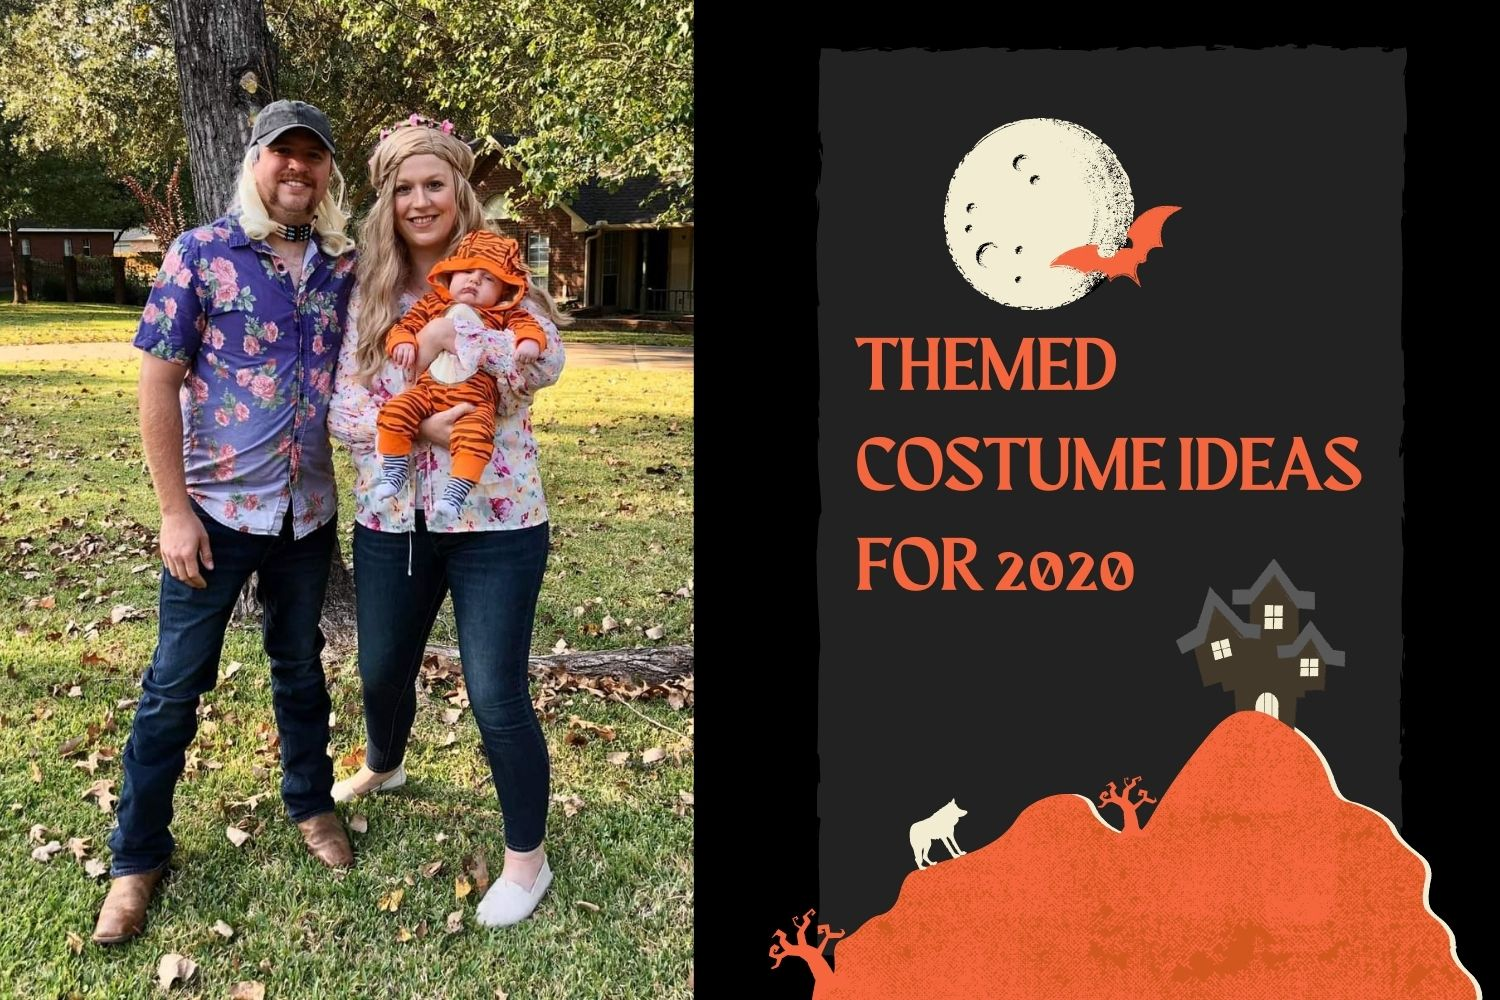 Themed Costumes Ideas for Halloween 2020